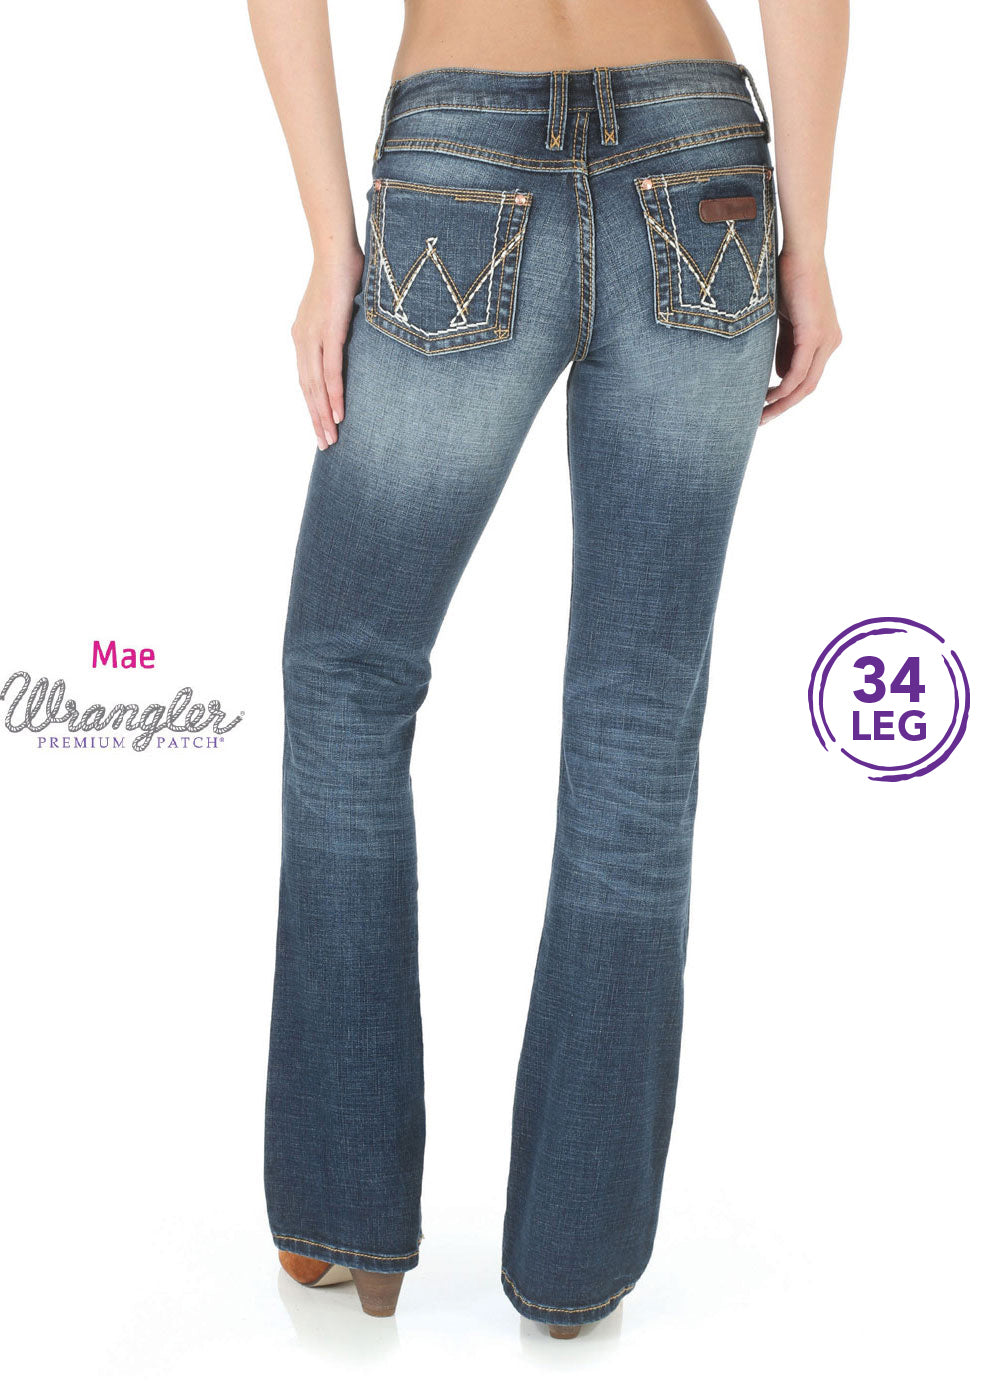 WMNS P/PATCH SITSABOVE HIP JEAN - MAE 34